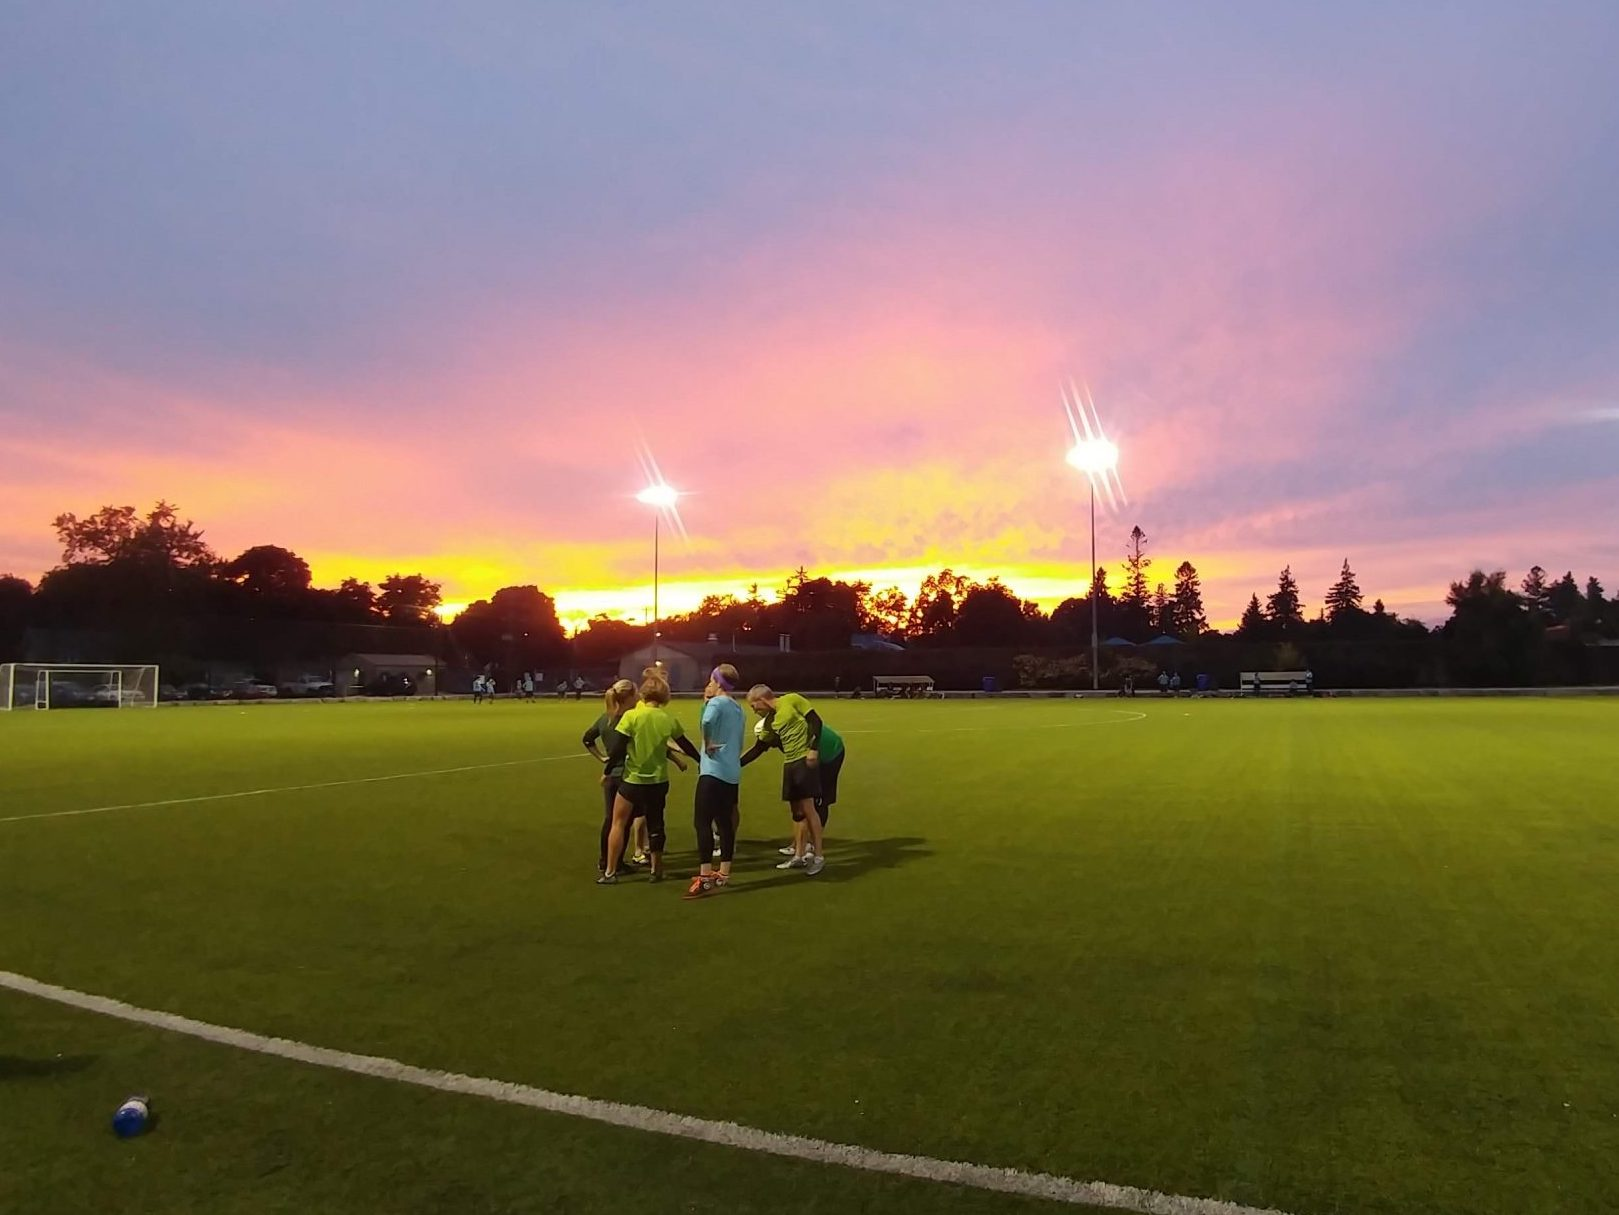 A team circles for a huddle on a turf field at sunset